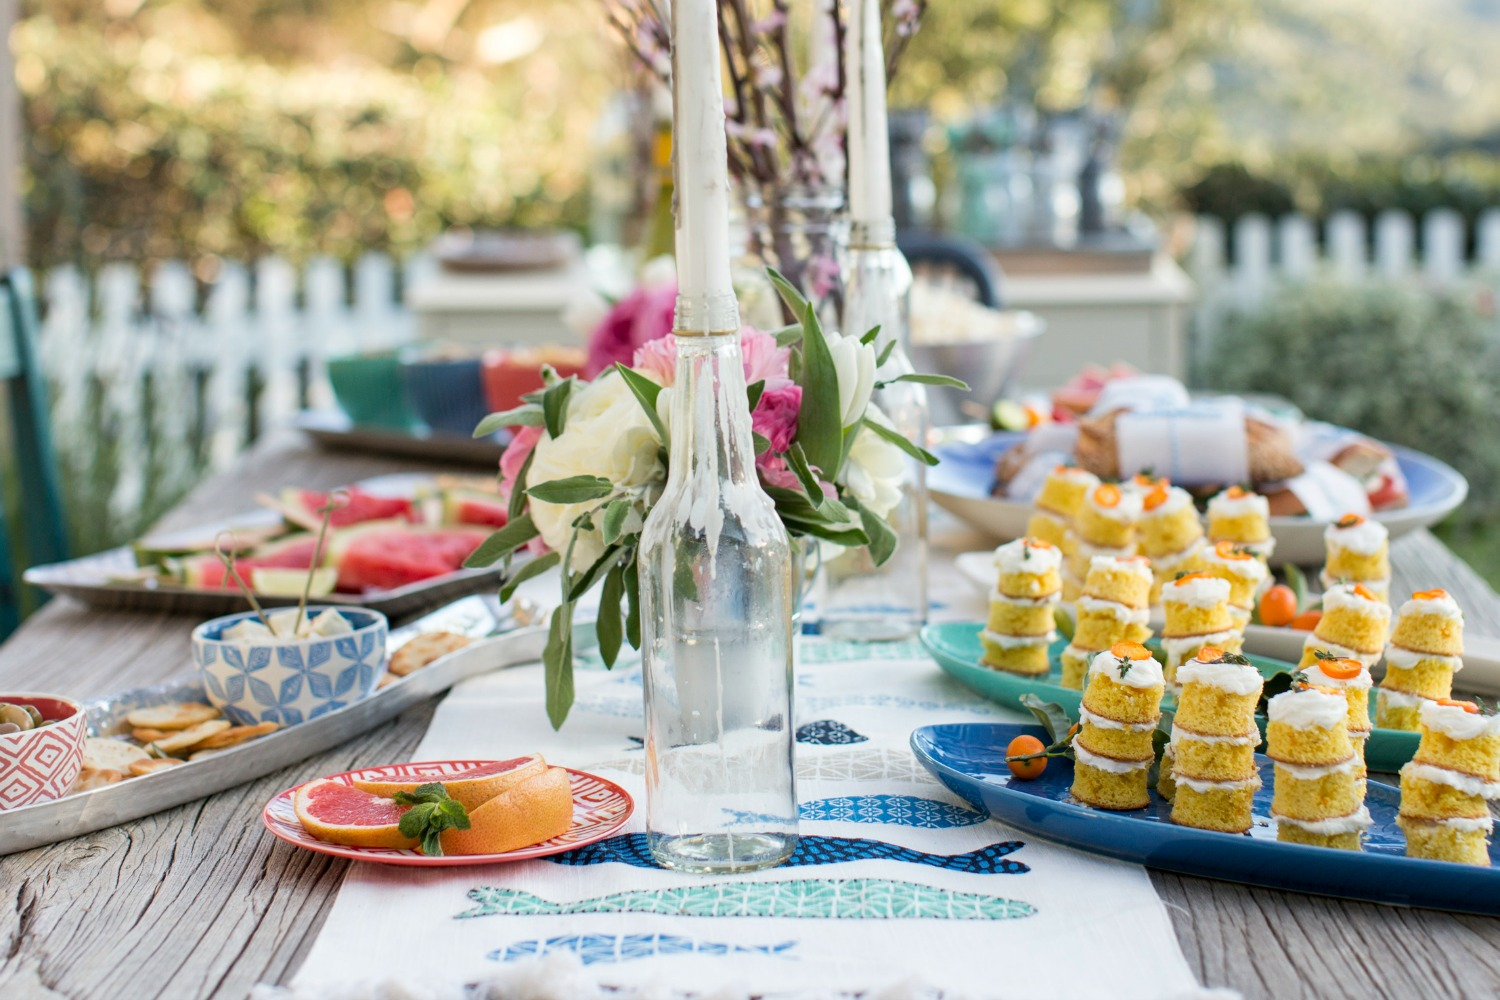 50+ summer party ideas and themes - outdoor entertaining tips